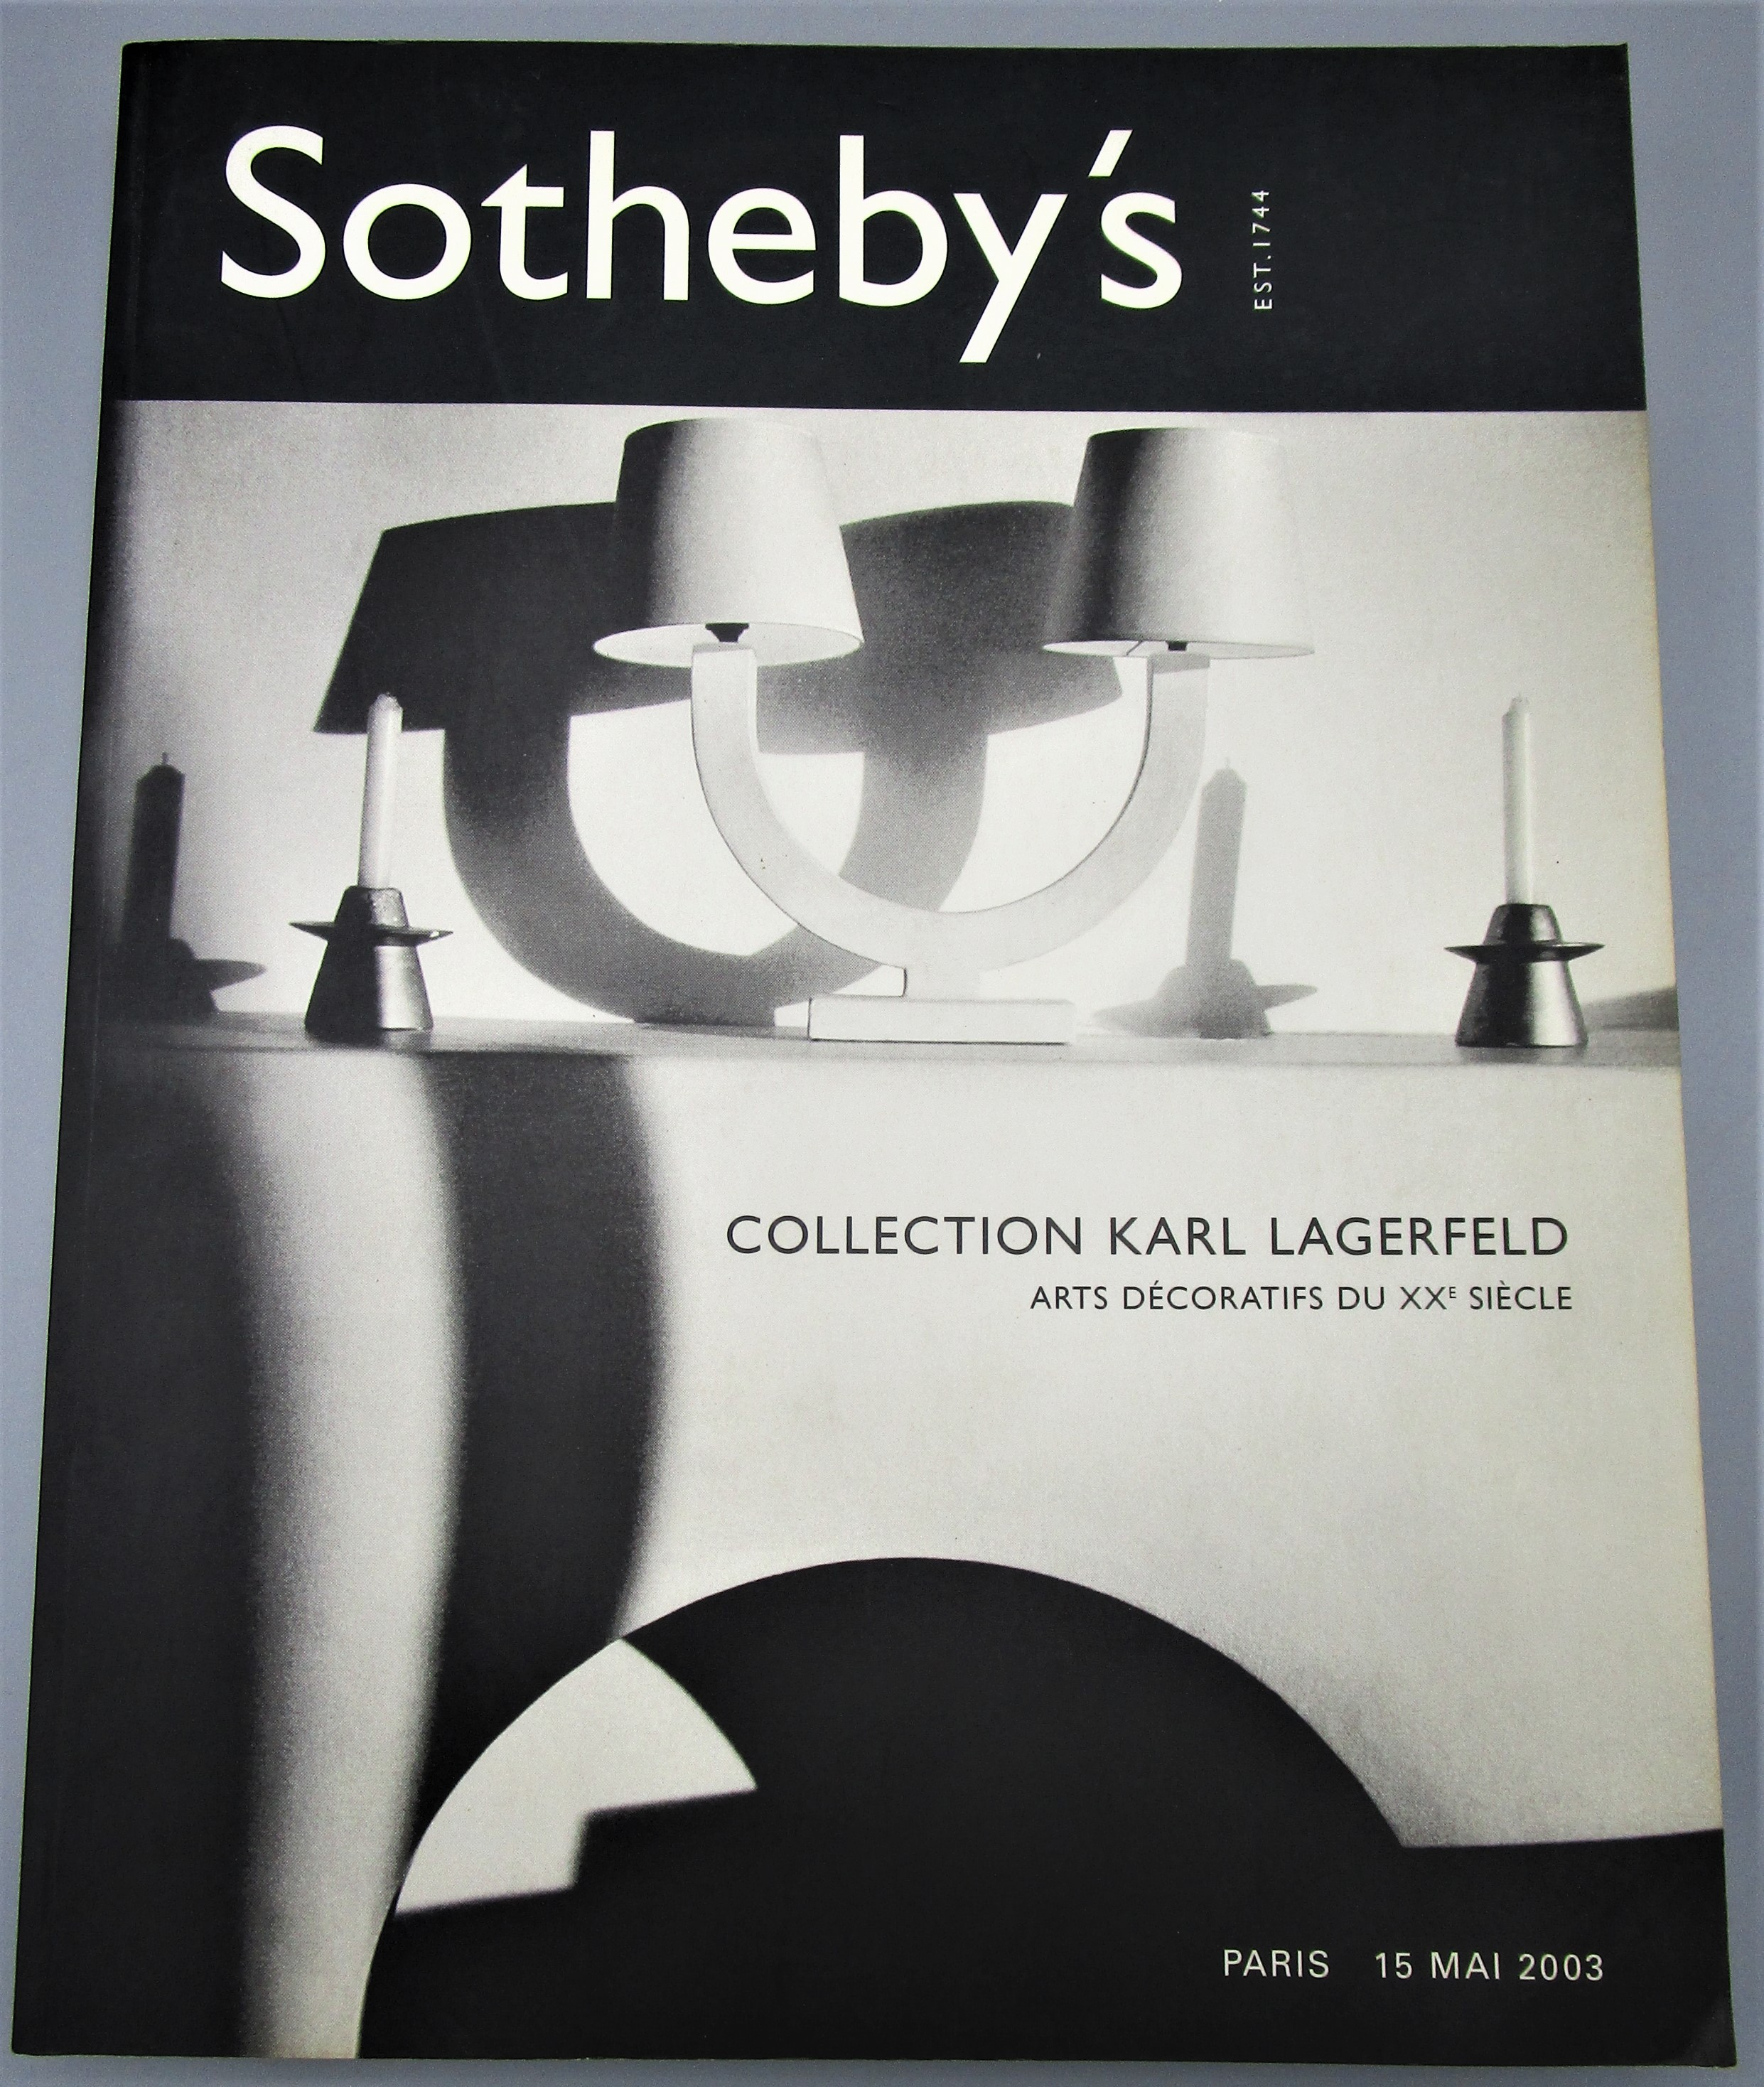 COLLECTION KARL LAGERFELD: ARTS DECORATIFS DU XXE SIECLE, by Sotheby's - 2003